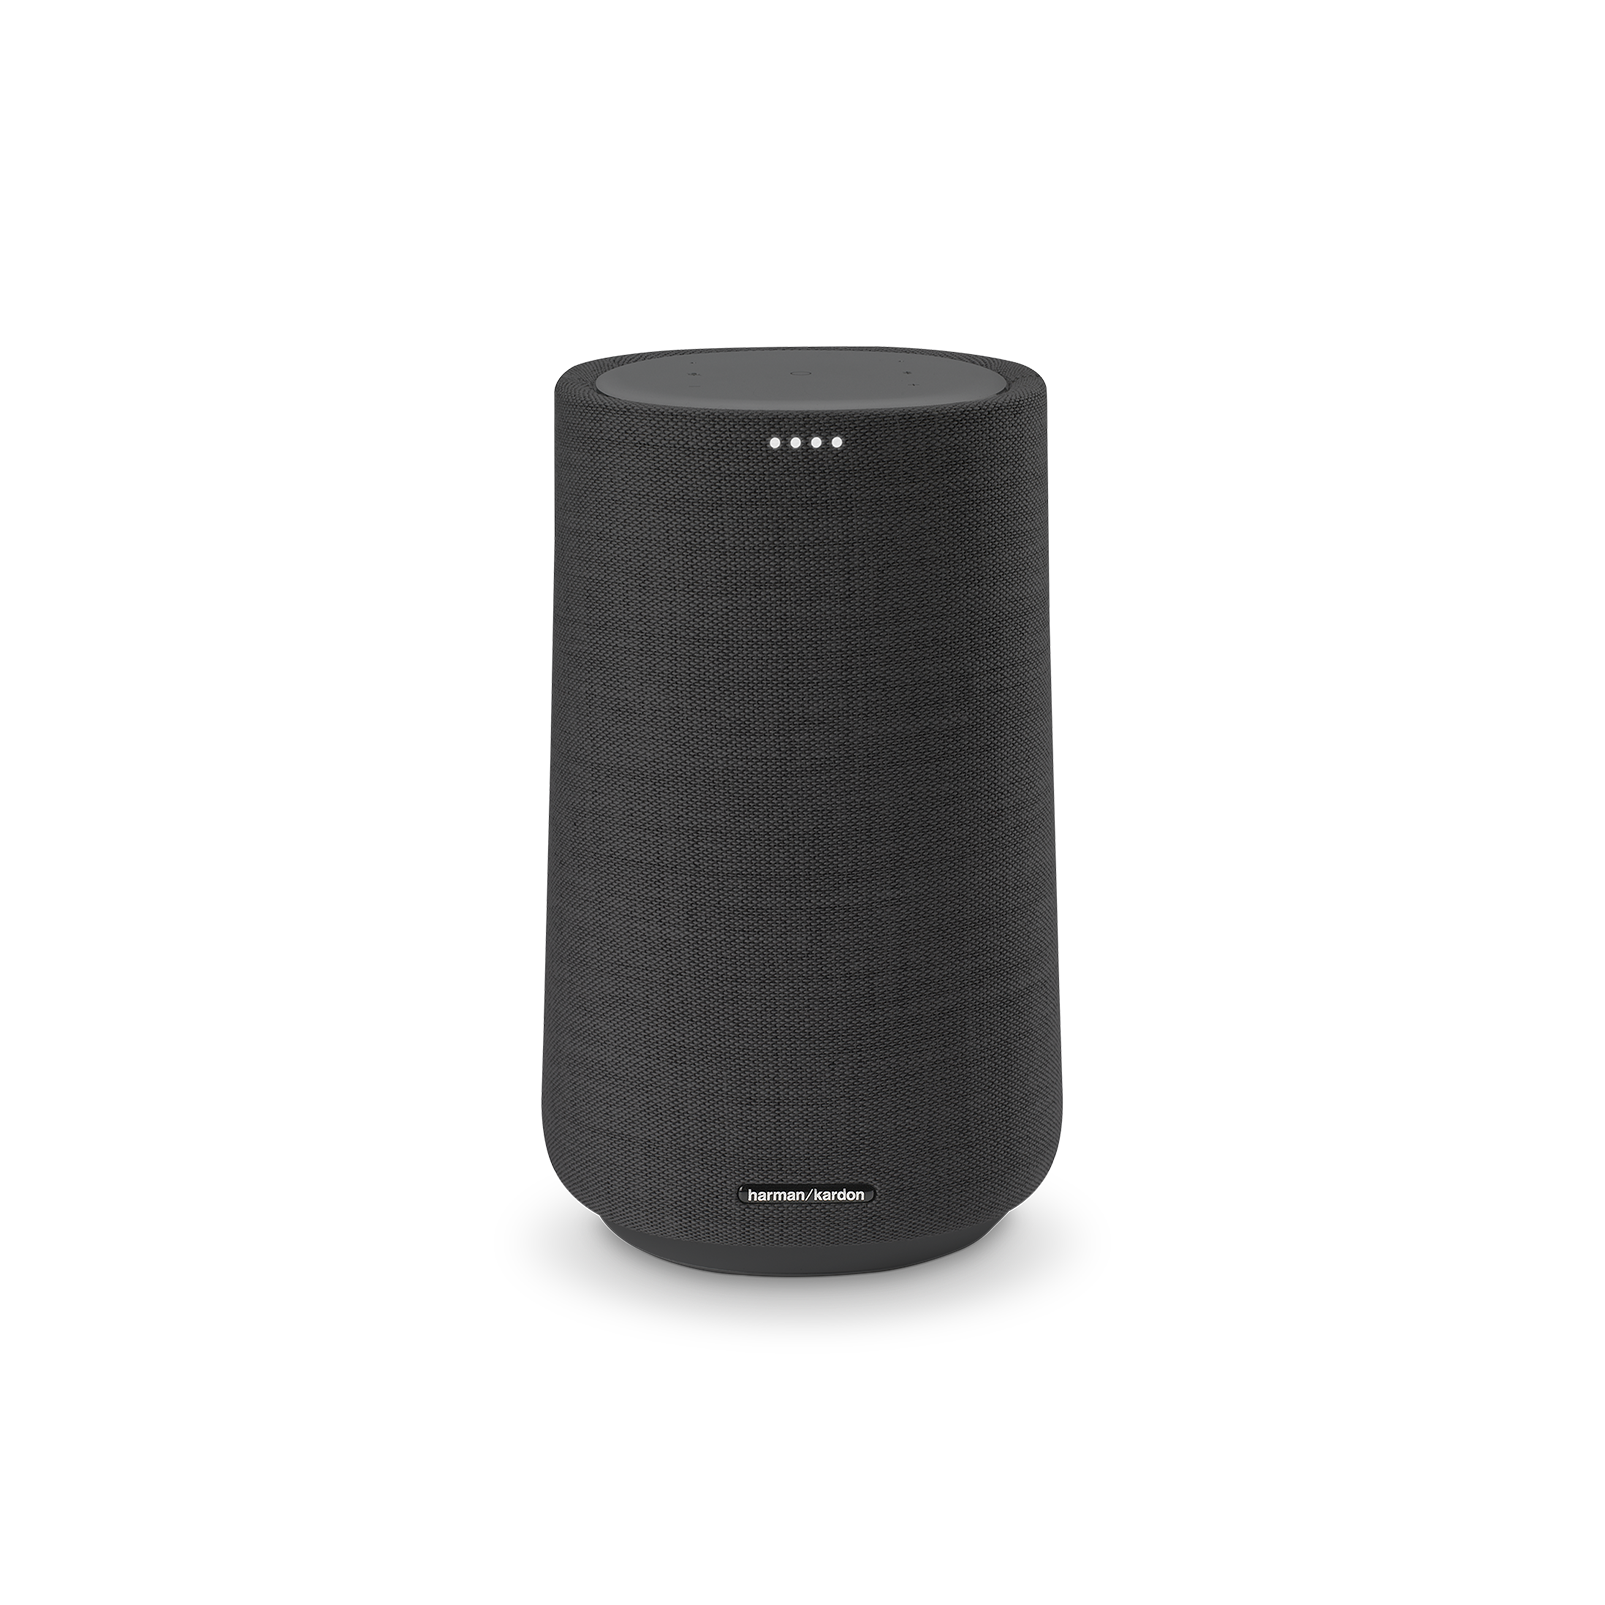 Harman Kardon Citation 100 - Black - The smallest, smartest home speaker with impactful sound - Front